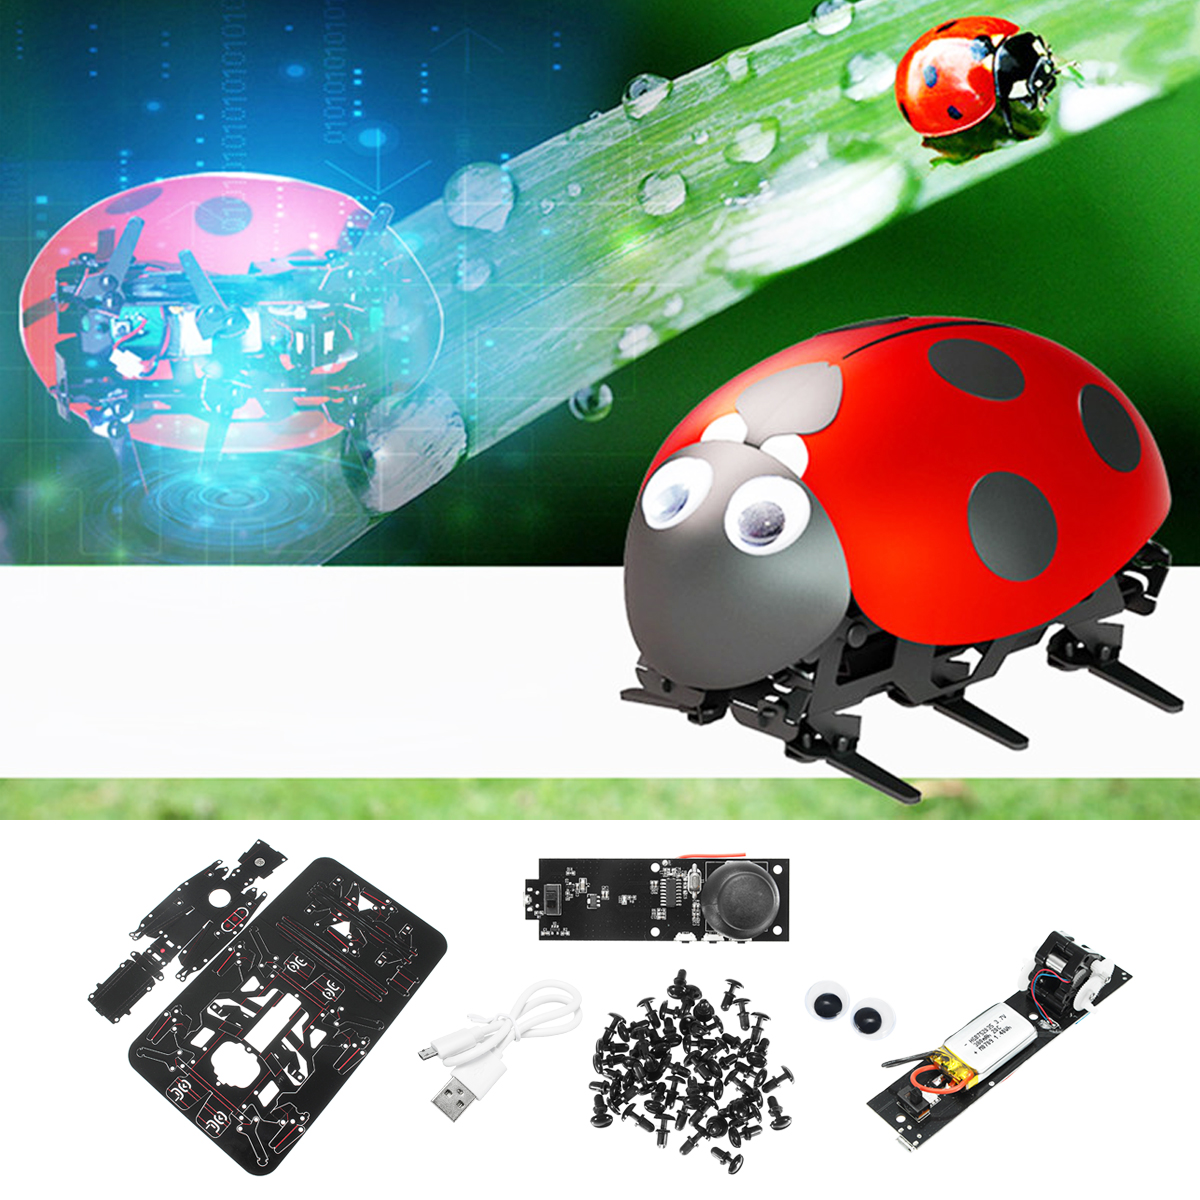 2.4G Toptrend Intelligent RC Ladybug Robot Beetle DIY Toy Gift w/ Remote Control